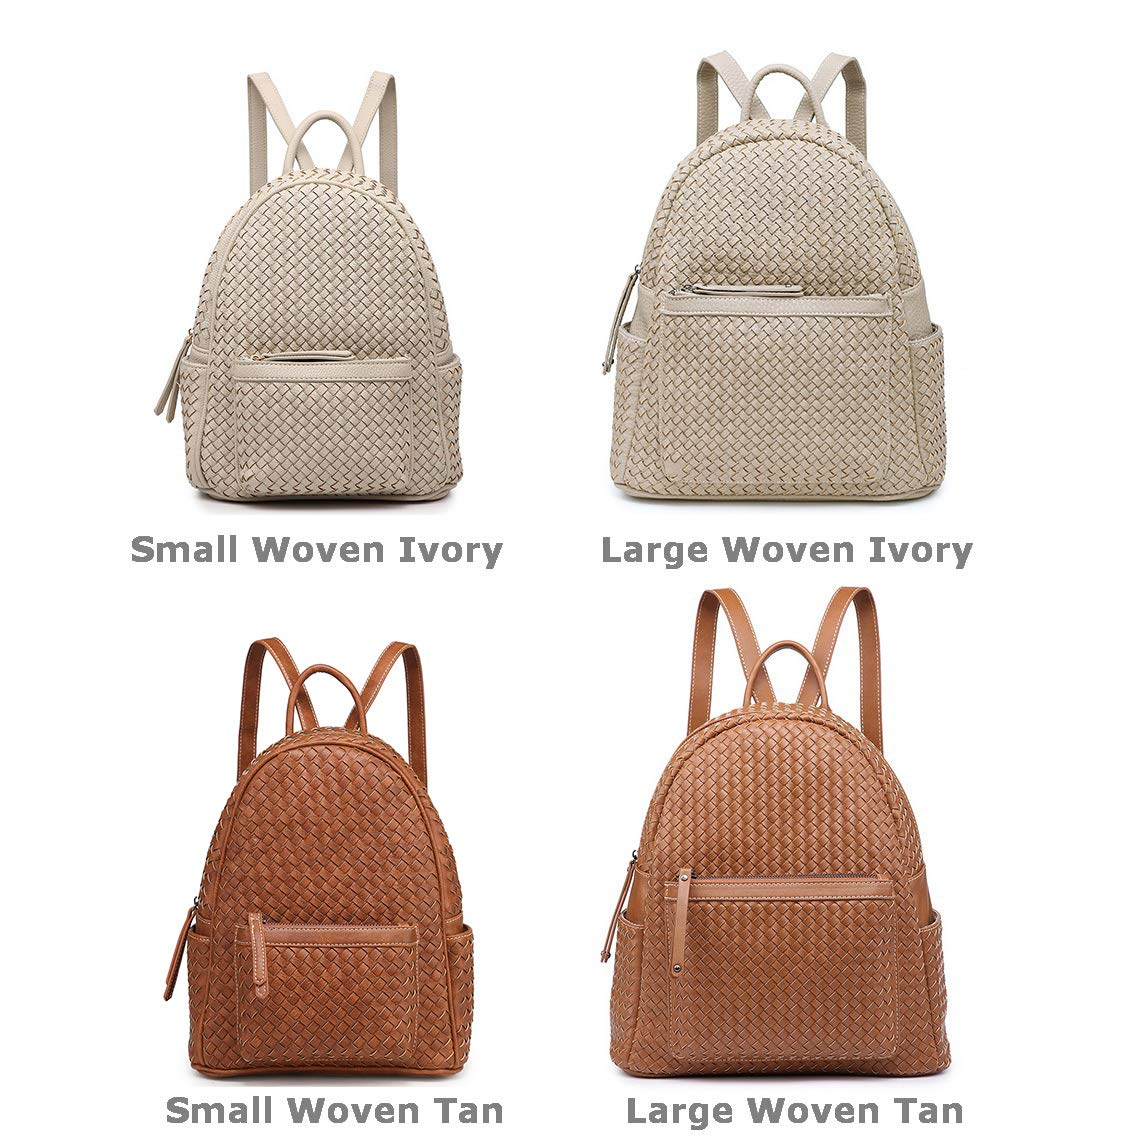 Small Women Backpack Purse for Women ladies Fashion Stylish Casual Shoulder Bags … (Tan) by Shomico (Image #2)